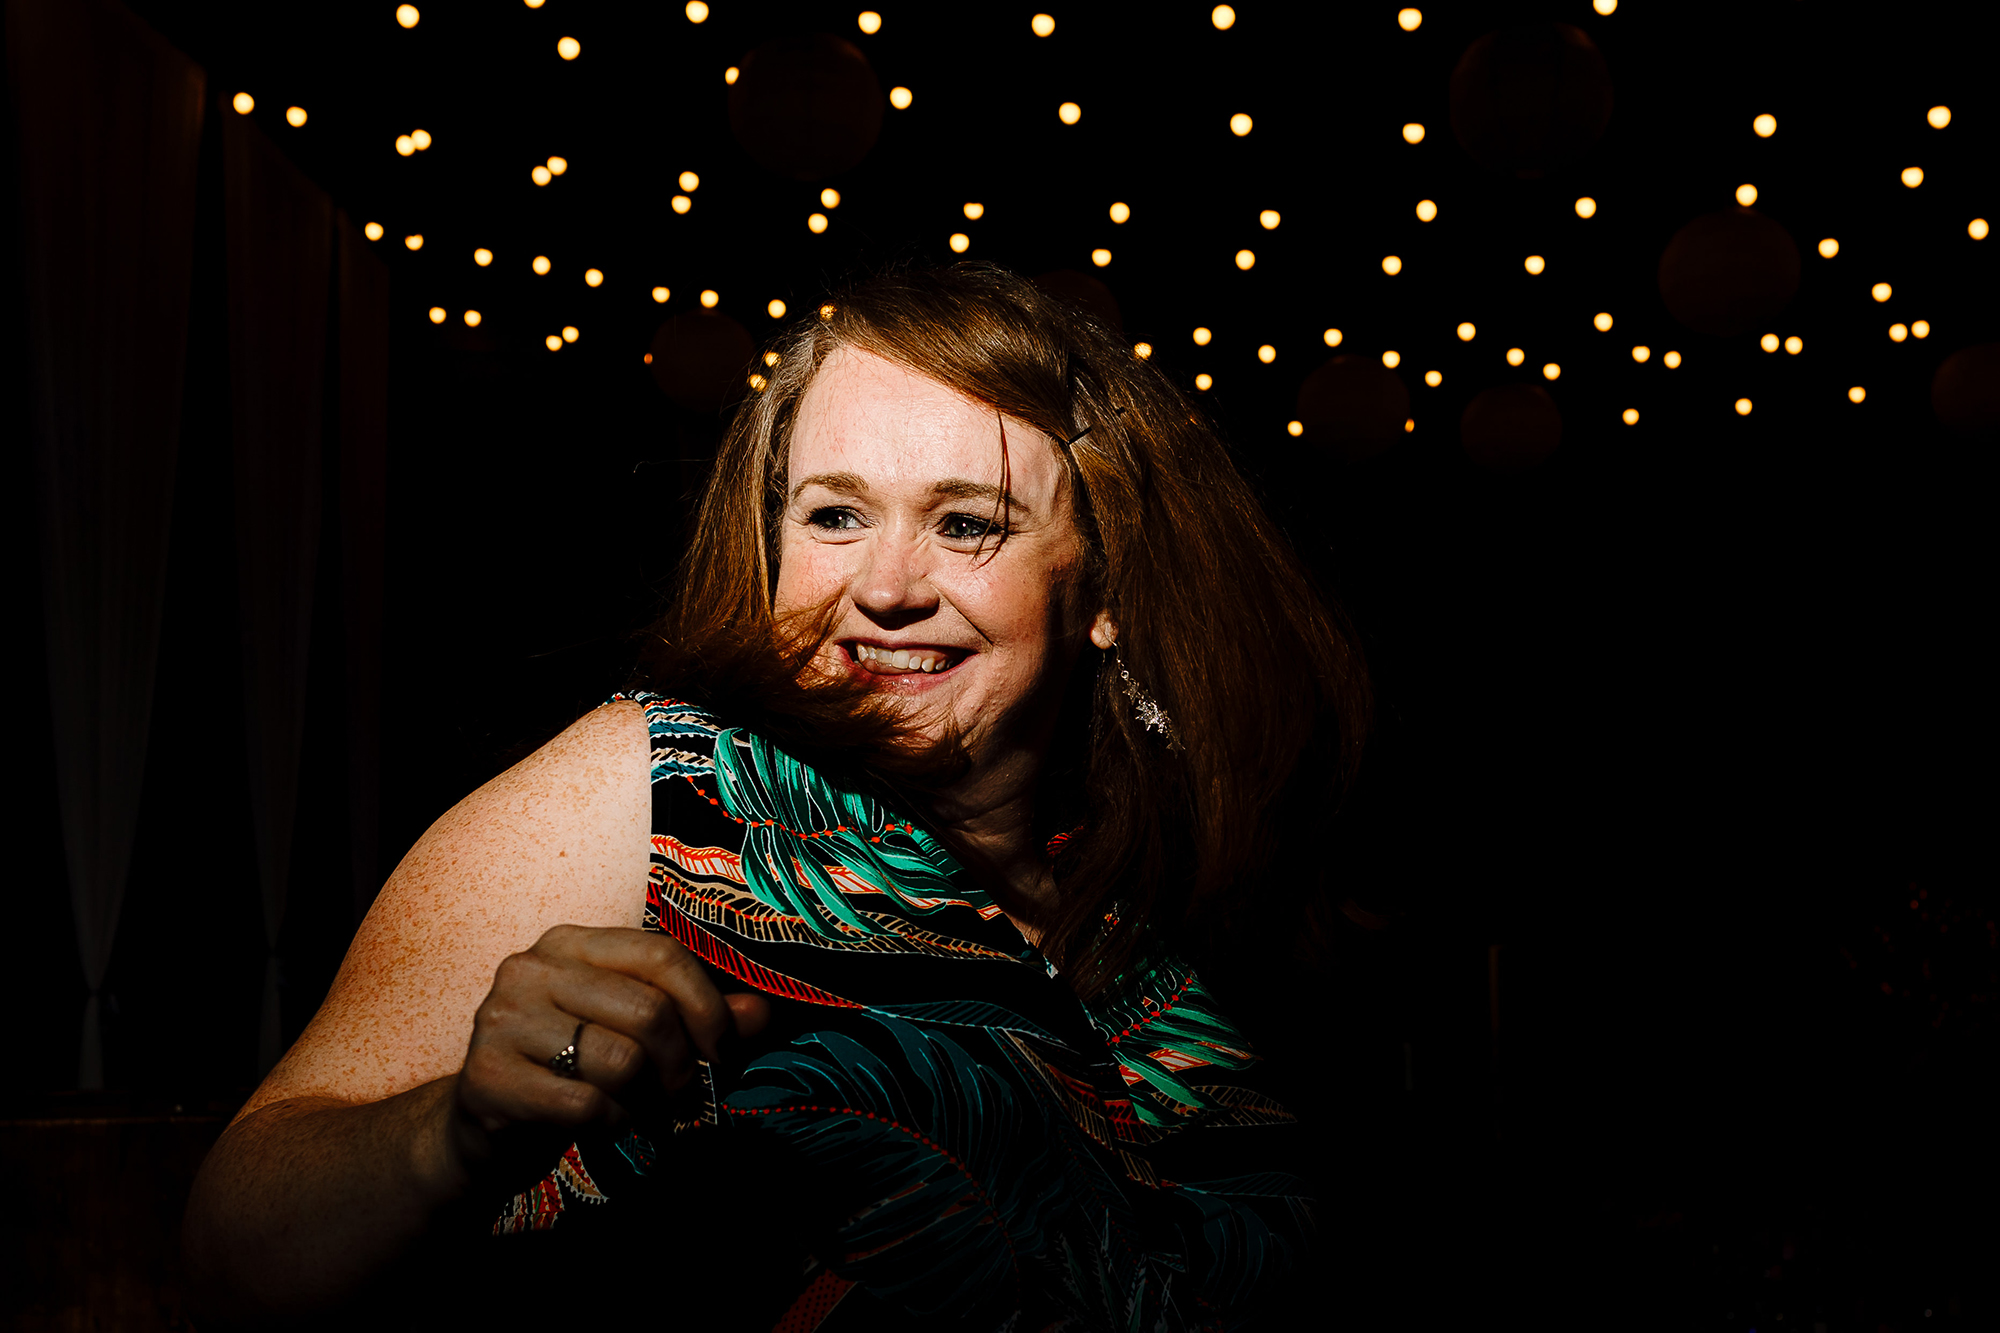 A guest smiling and dancing at a wedding